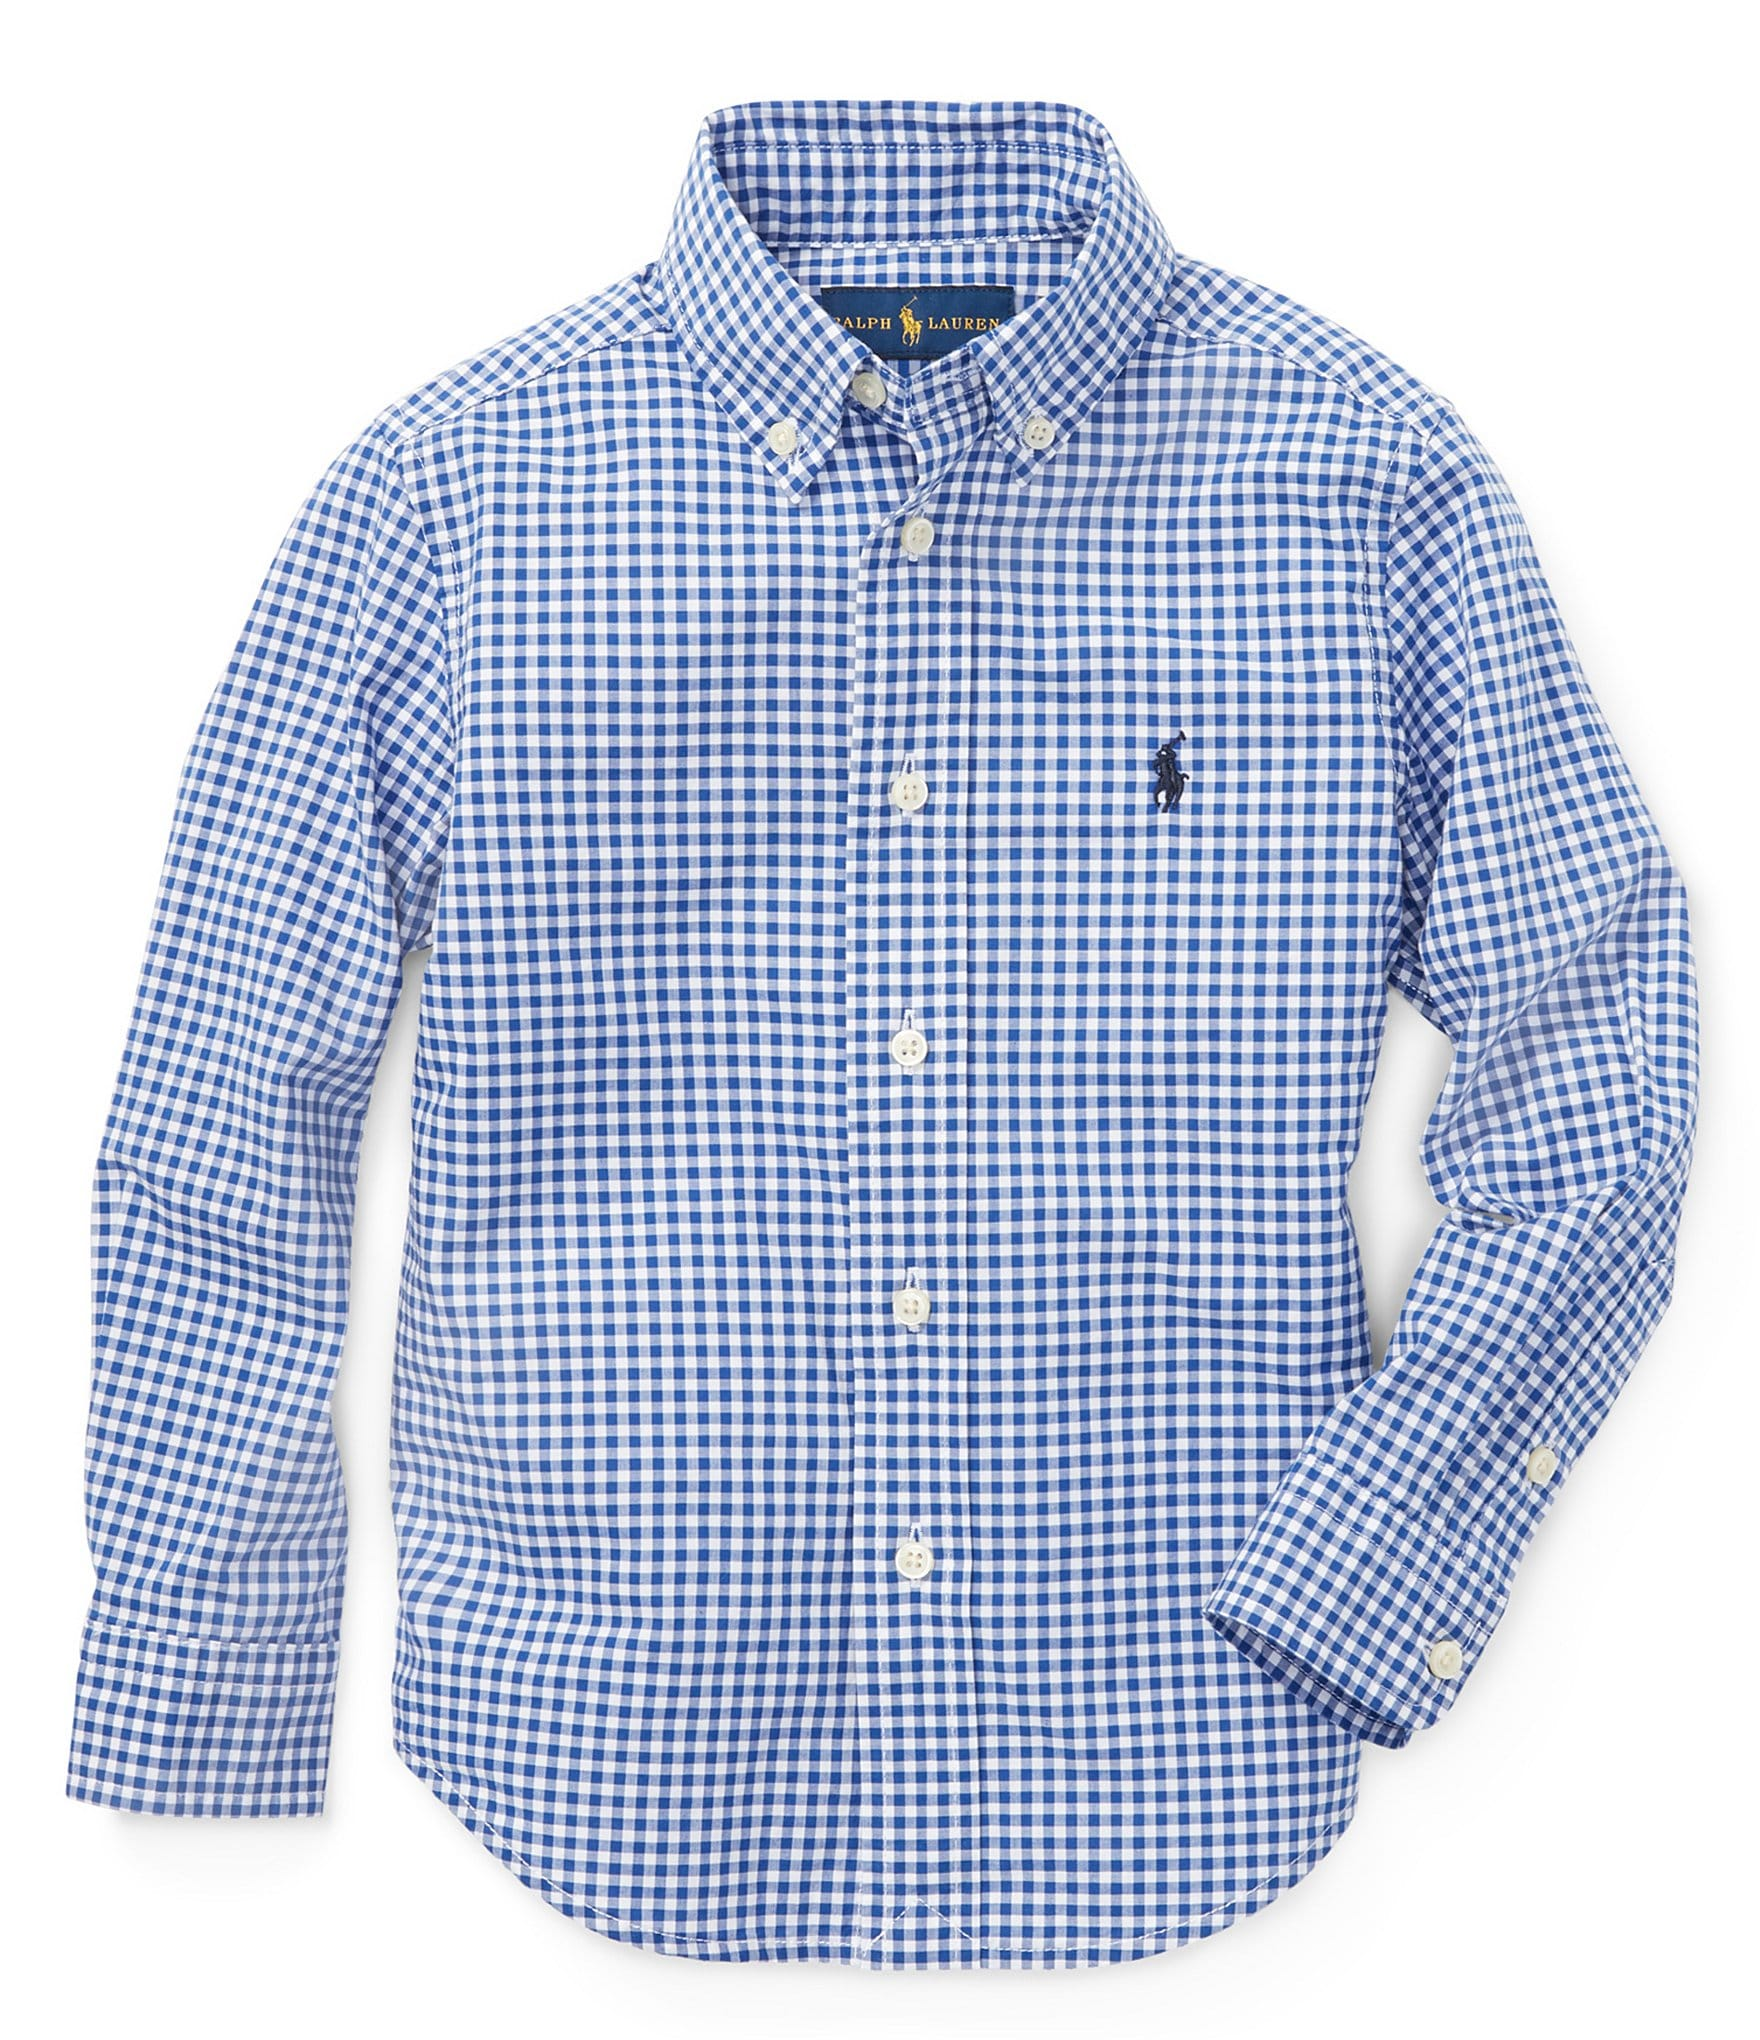 Ralph Lauren Boys Button Front Dress Shirts Dillards